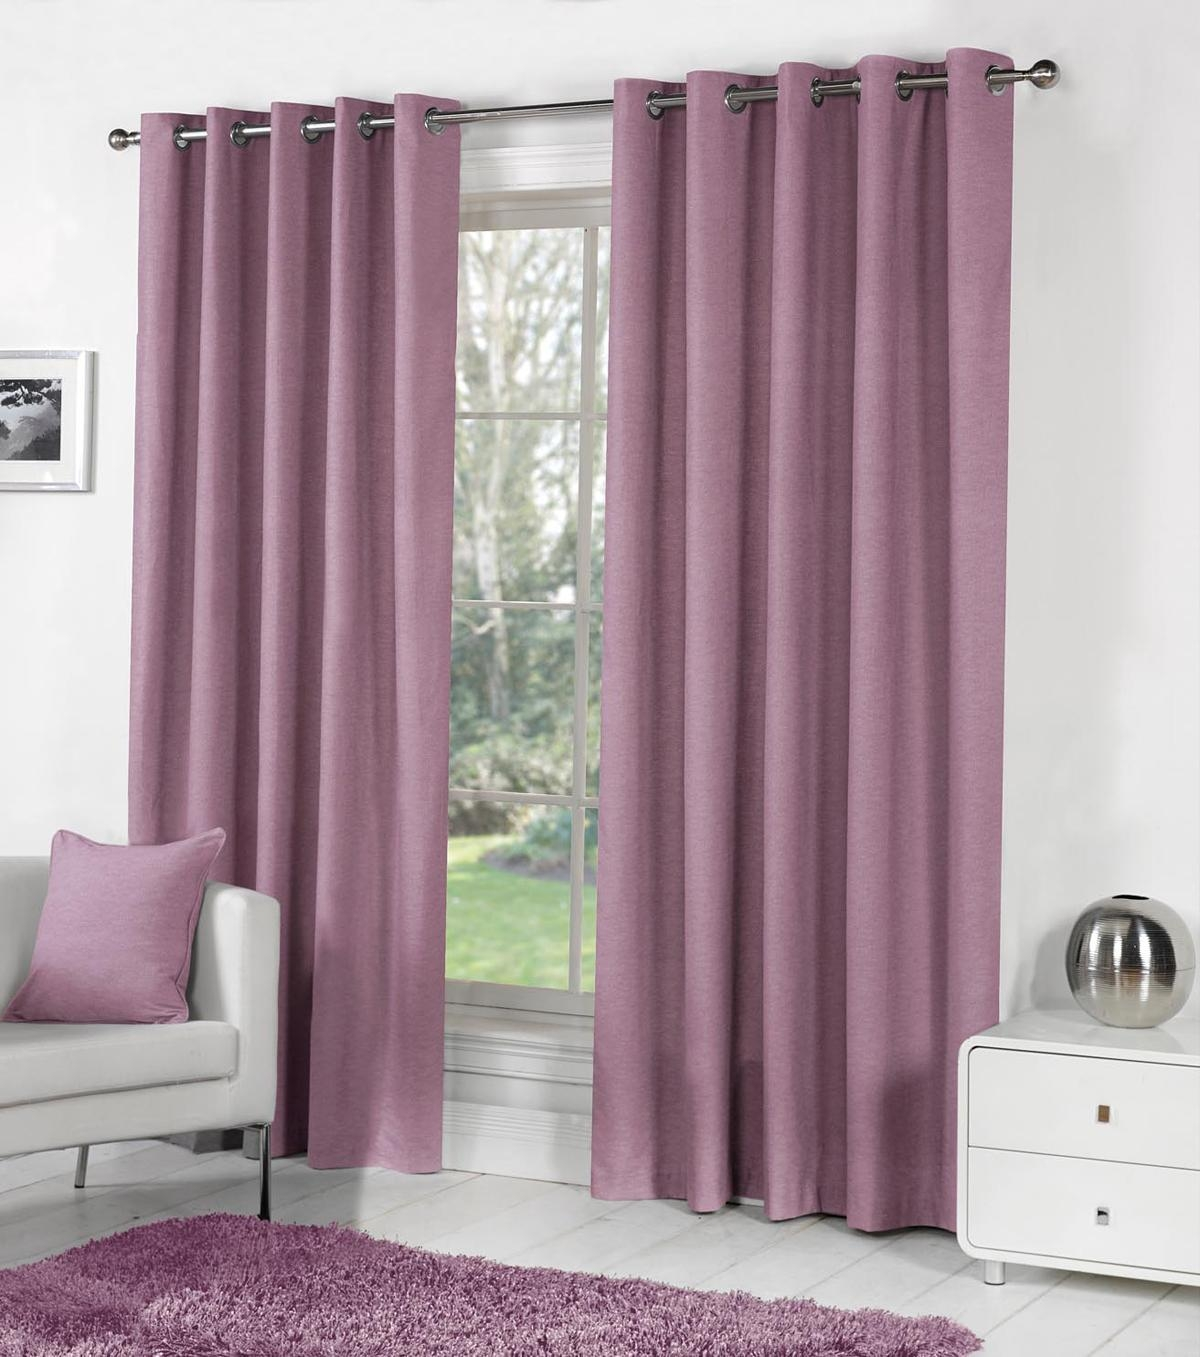 studio curtain curtains set dreaded light lightayey inch of window drapes inspirations max length amazon panels photos com grey